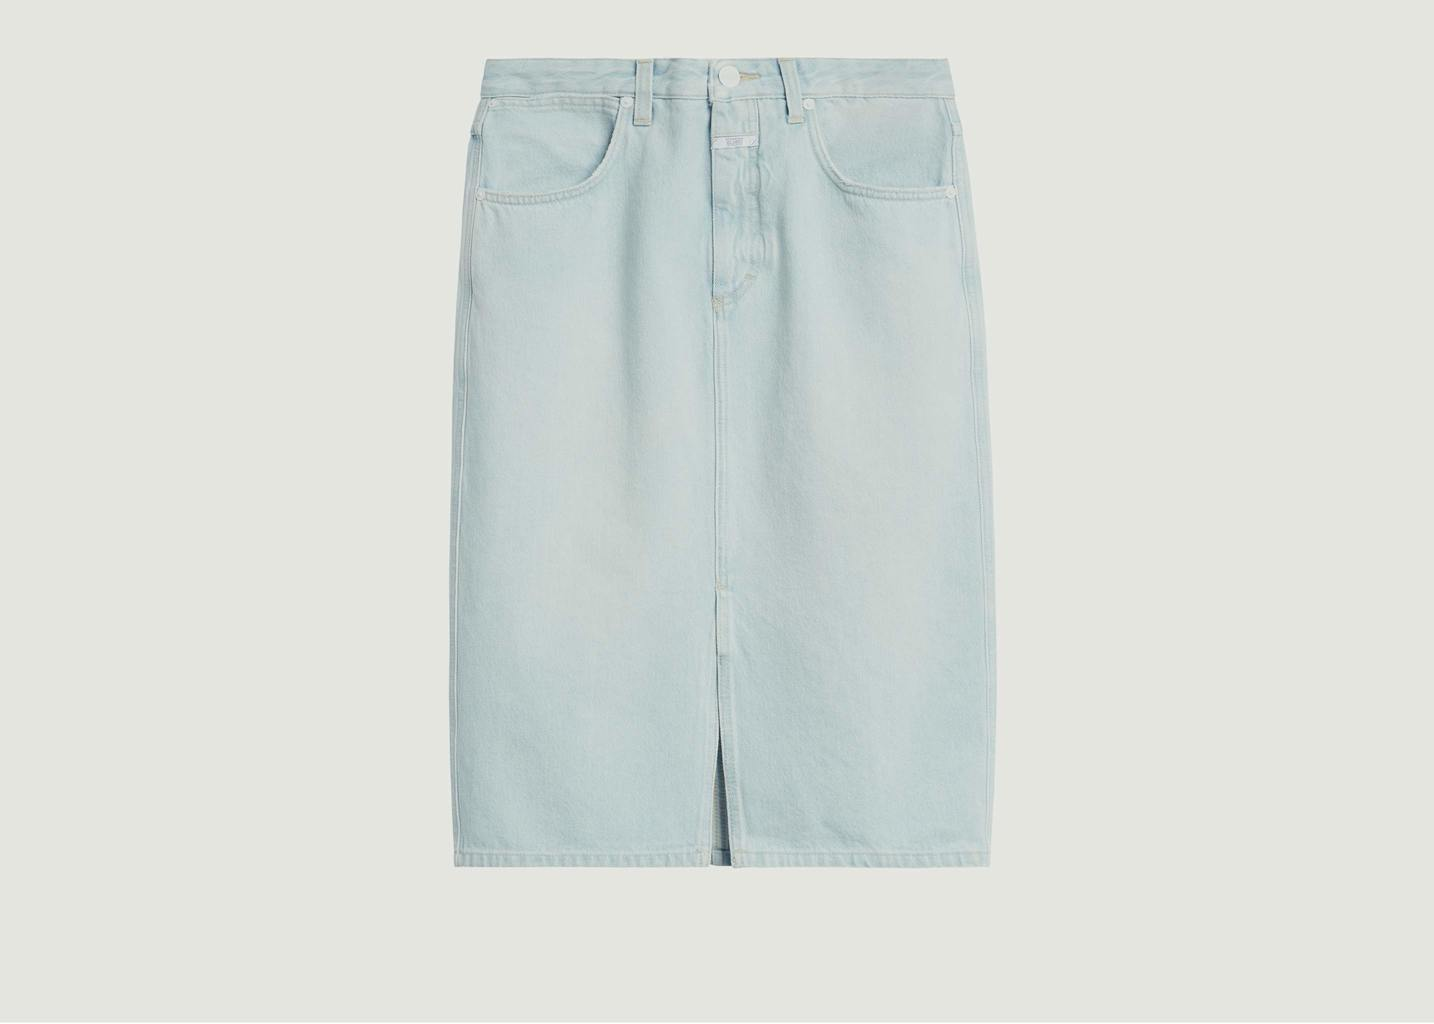 Jupe crayon Emmett en denim - Closed